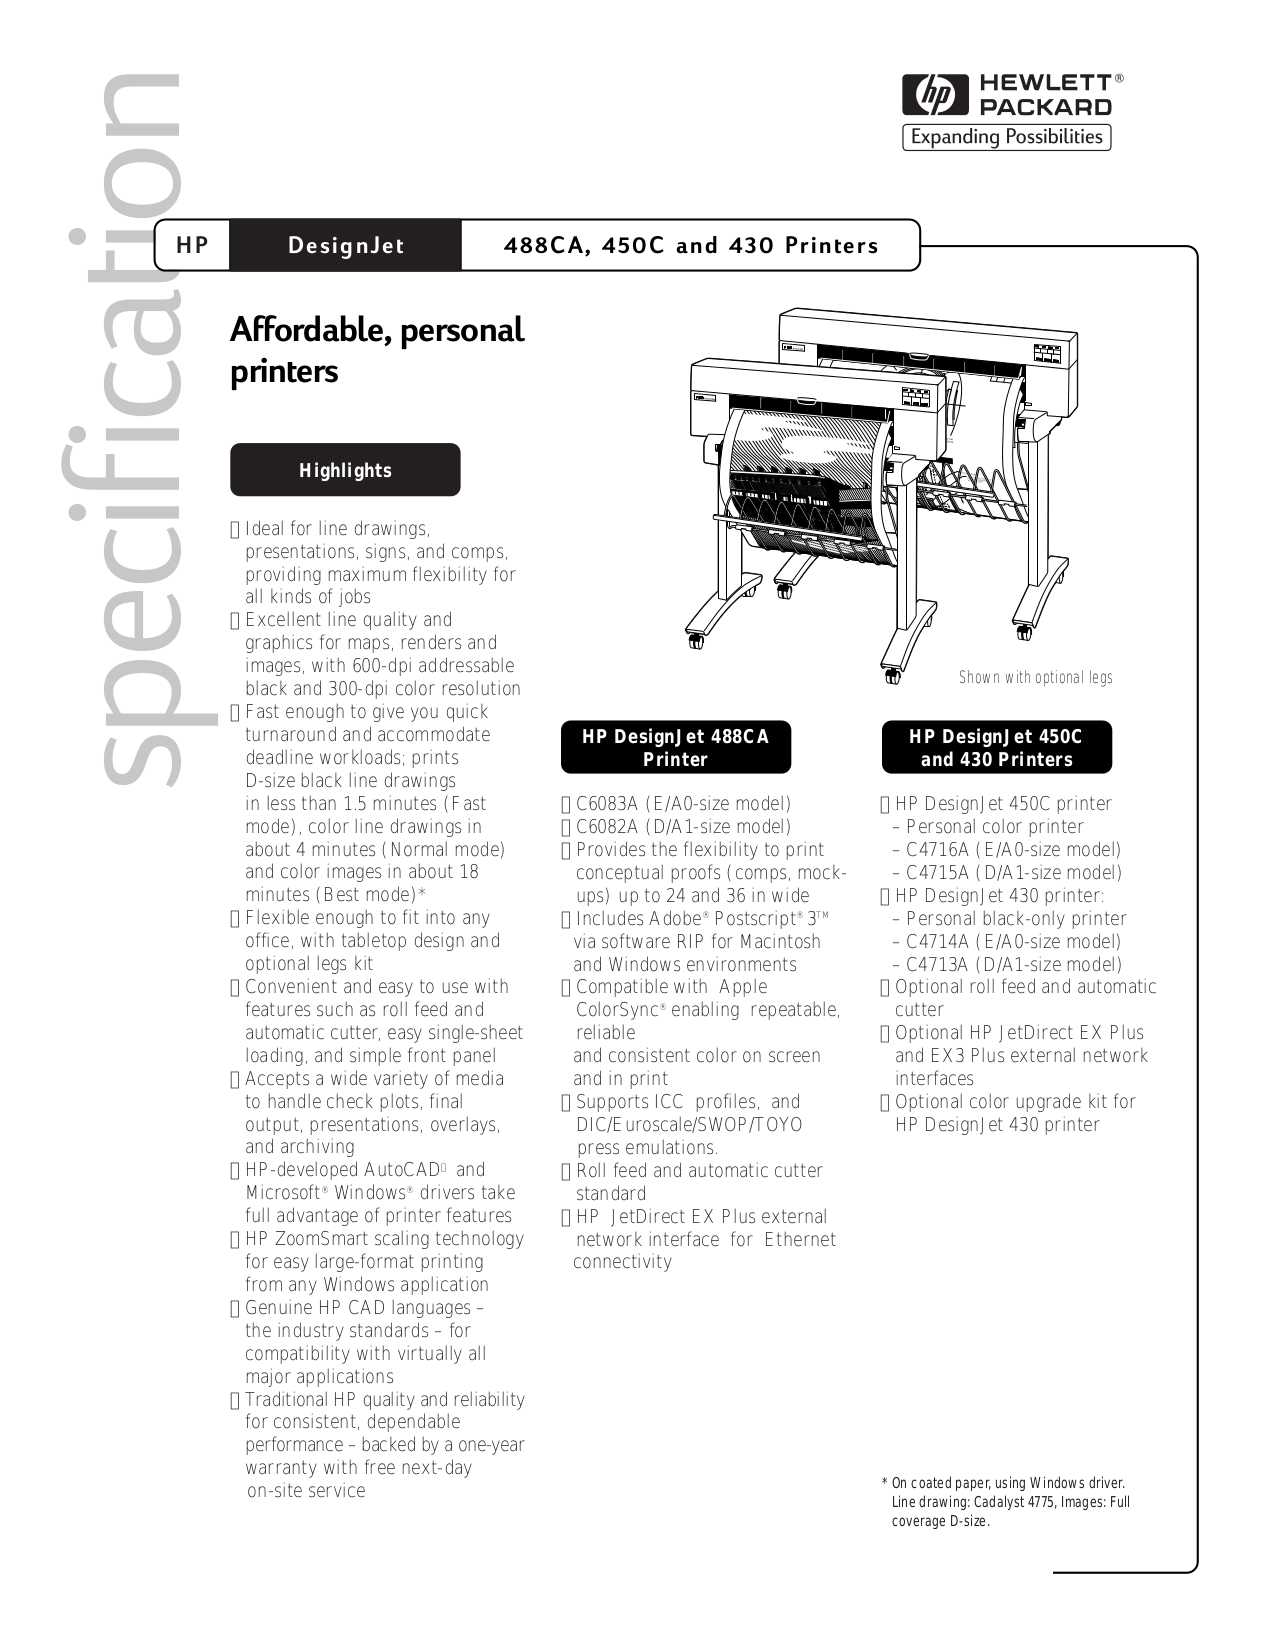 PDF manual for HP Printer Designjet 488ca